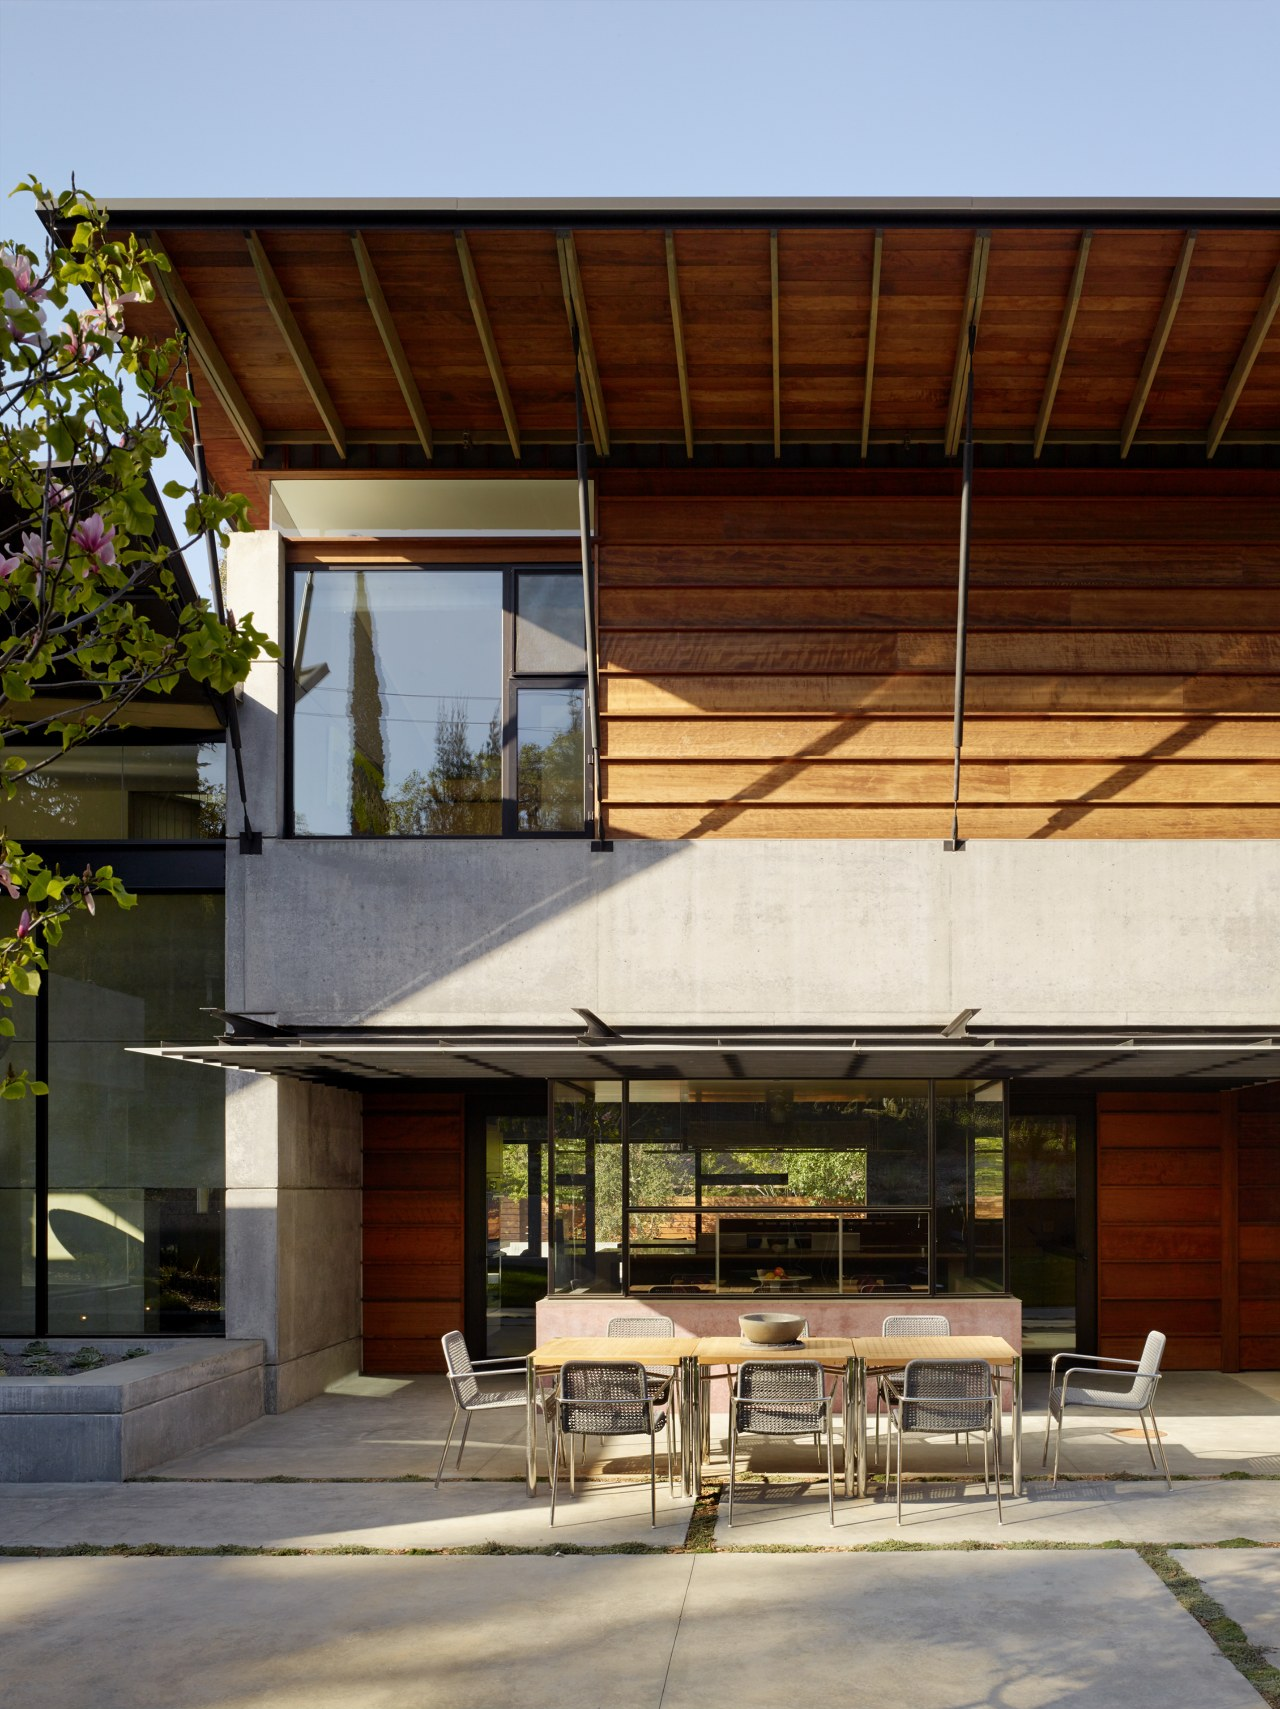 Reclaimed redwood cladding contrasts with the predominantly concrete architecture, house, home, roof, siding, cladding, concrete, redwood, FuTung Cheng, Cheng Design